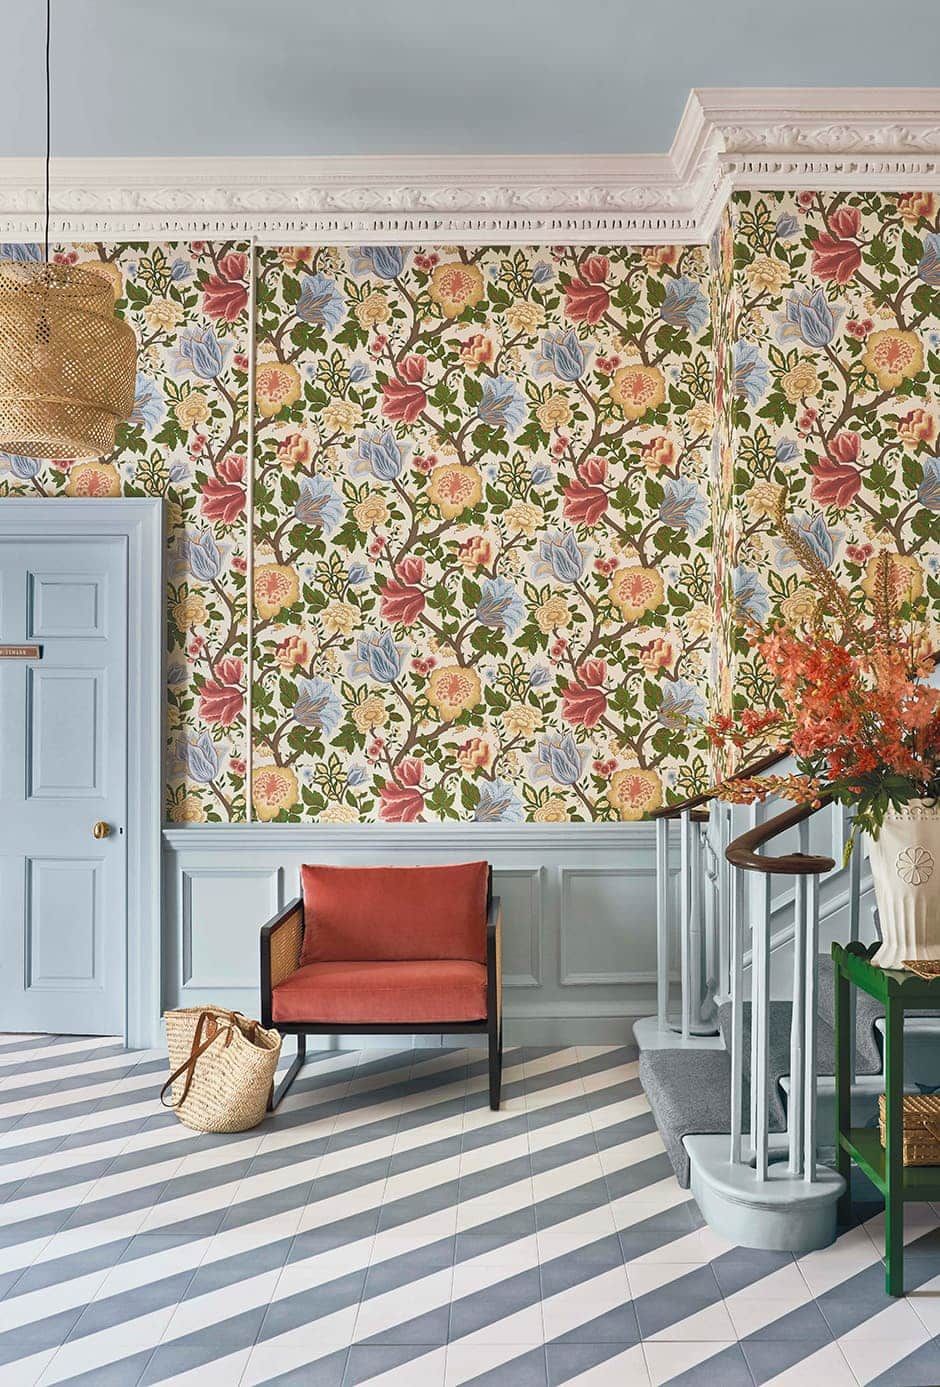 Wallpaper that wows as part of a layered interior from